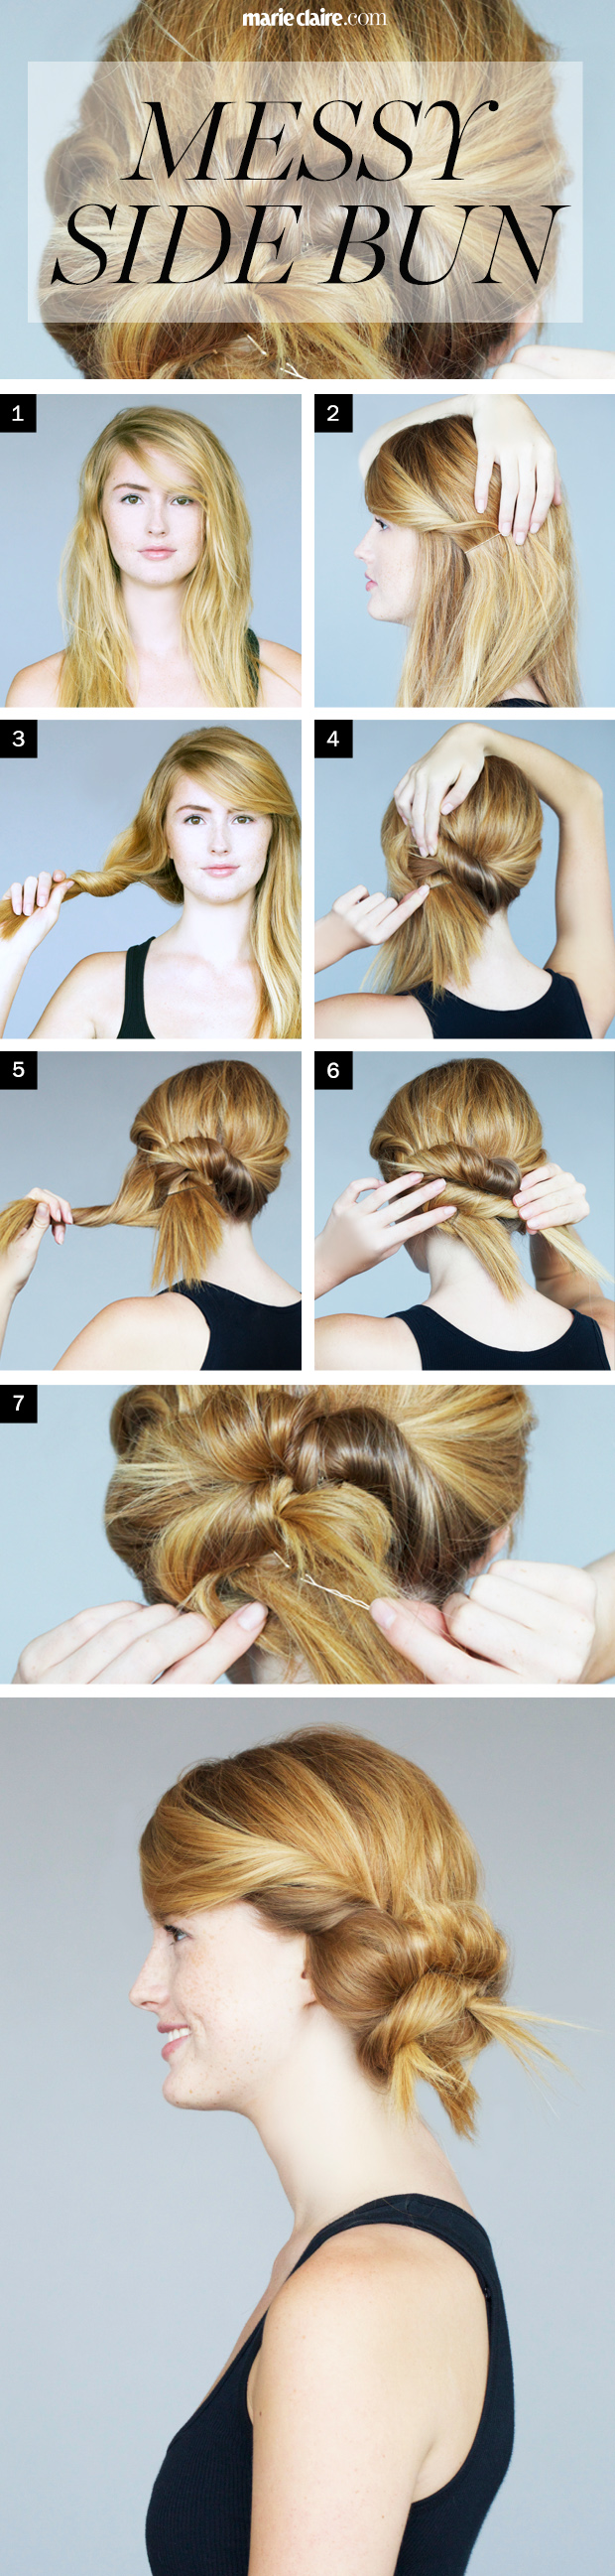 54835eb379f3f_-_mc_makeuptutorial_messysidebun.jpg